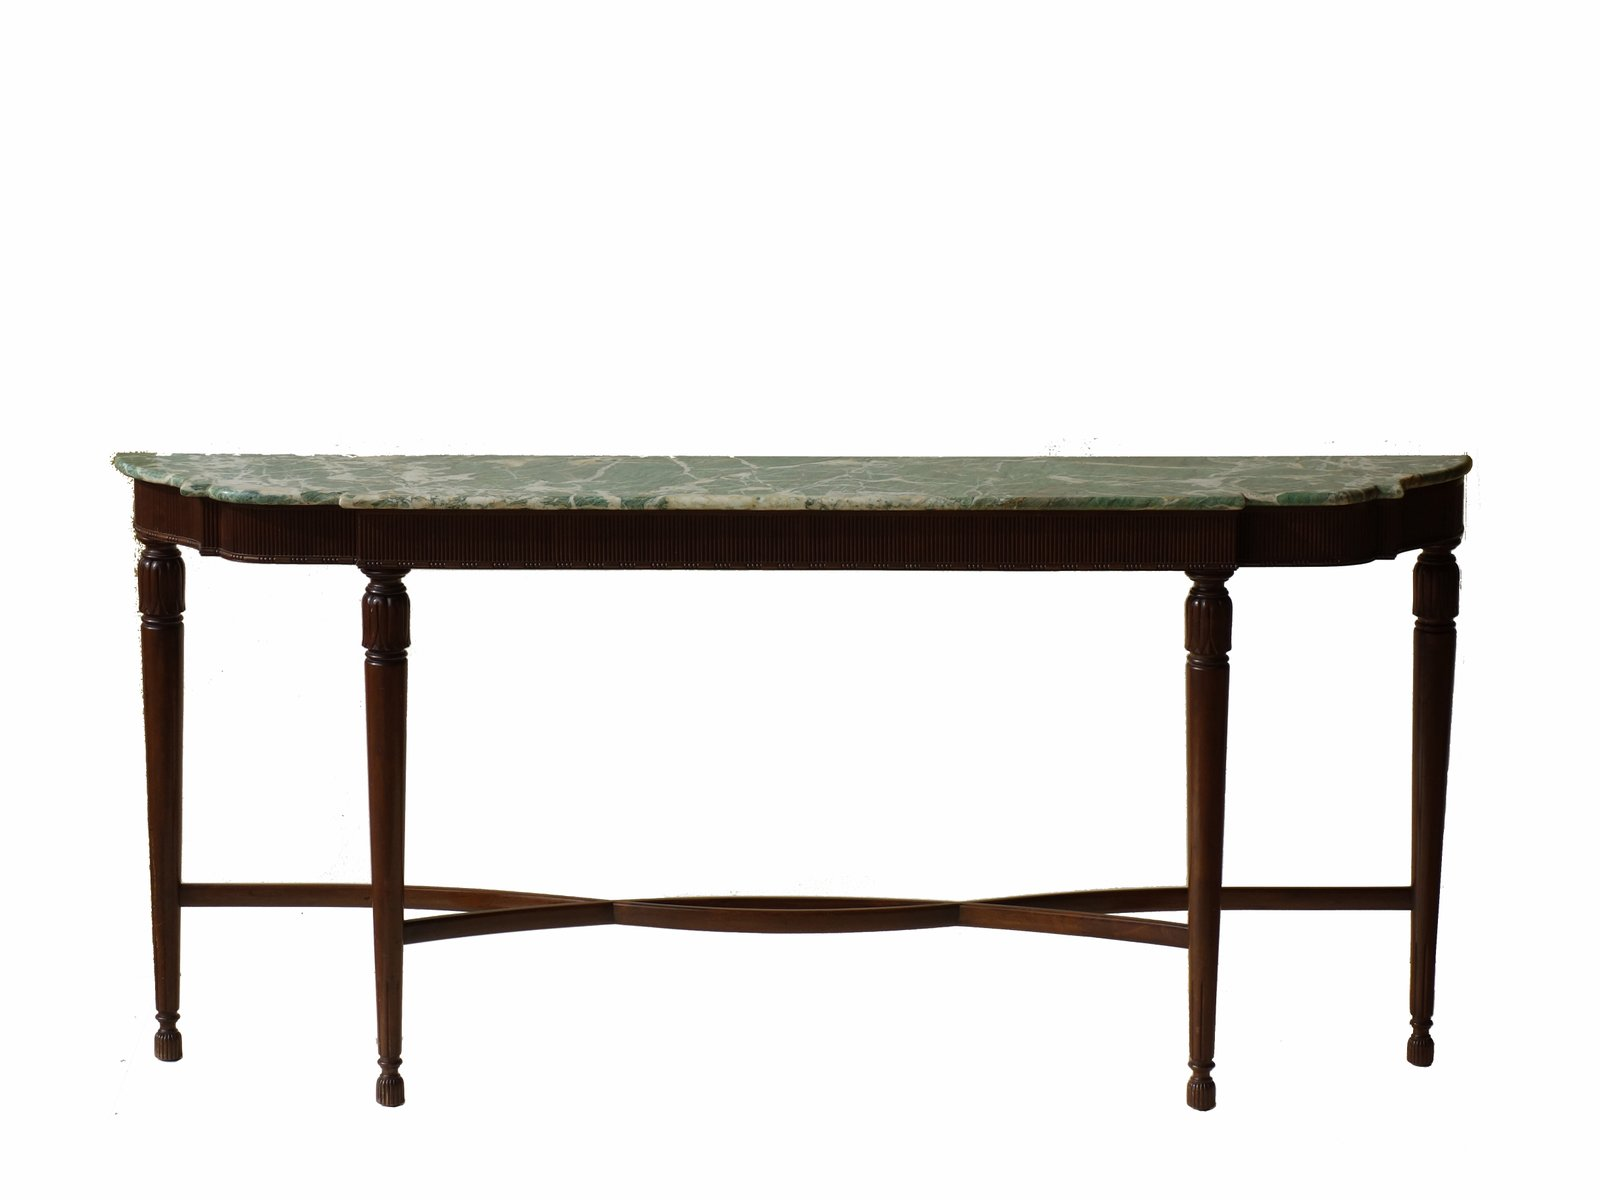 Mid century italian console table by paolo buffa for sale at pamono geotapseo Image collections